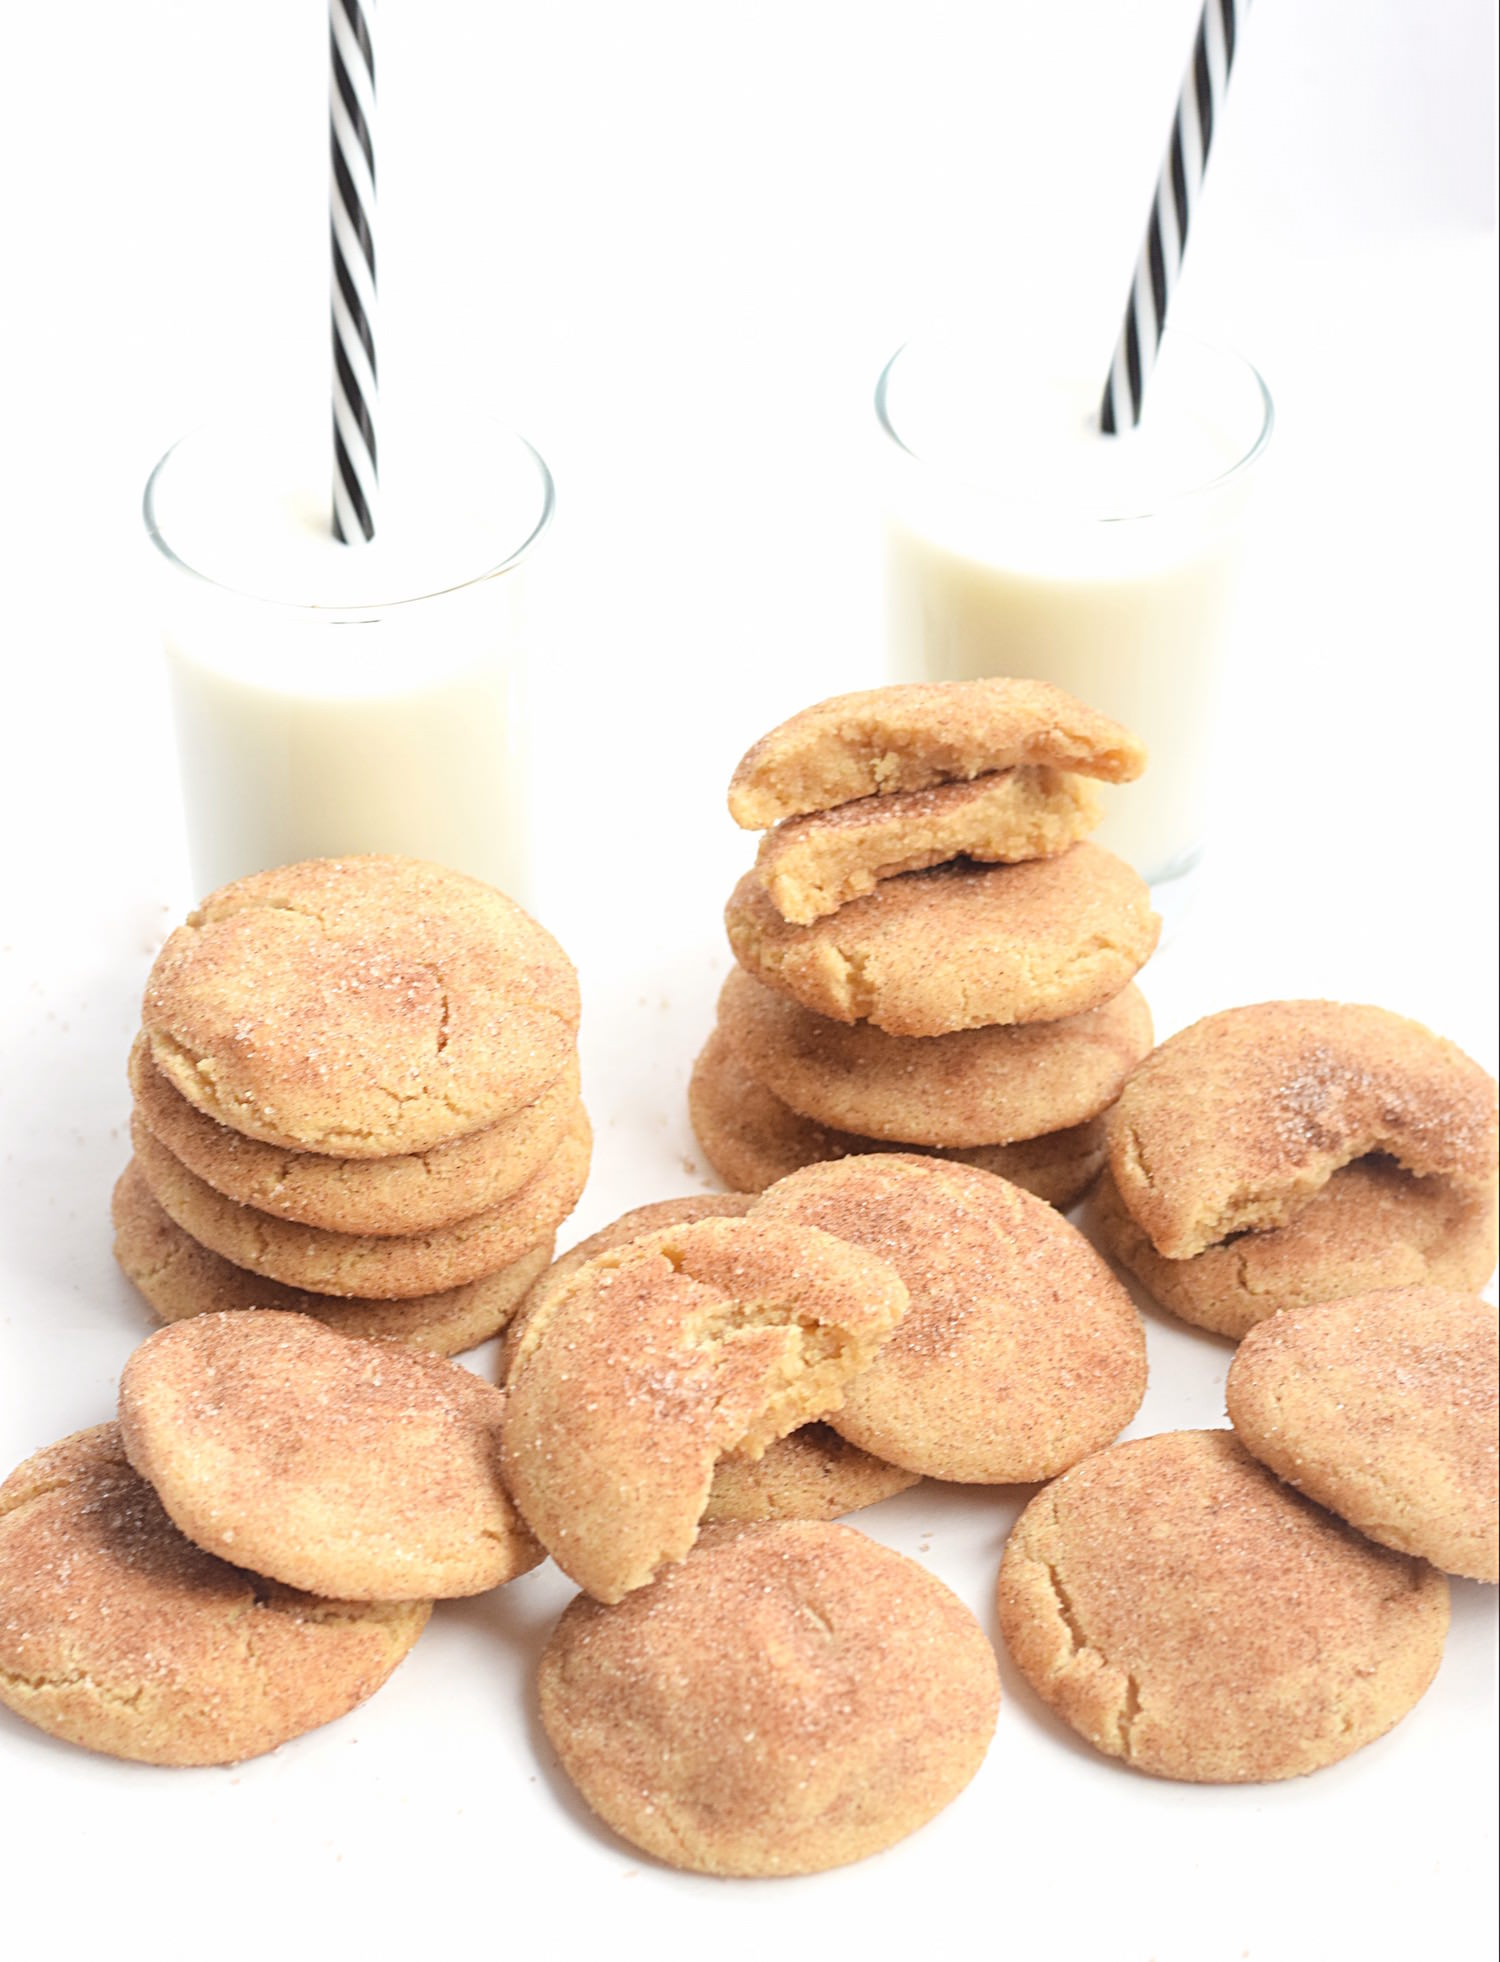 The Best No-Butter Snickerdoodle Cookies: sink your teeth into these super soft, gooey, thick cookies made in minutes with coconut oil! Addictive! | TrufflesandTrends.com